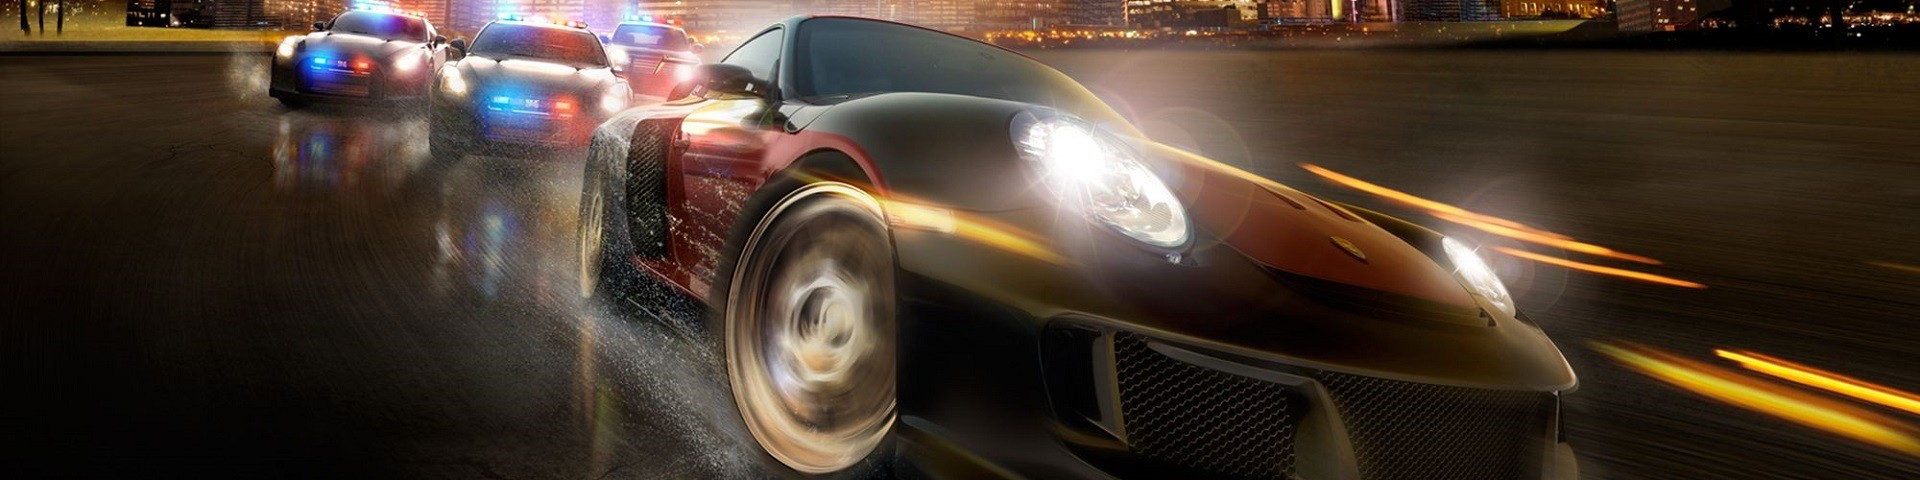 need for speed undercover download free pc